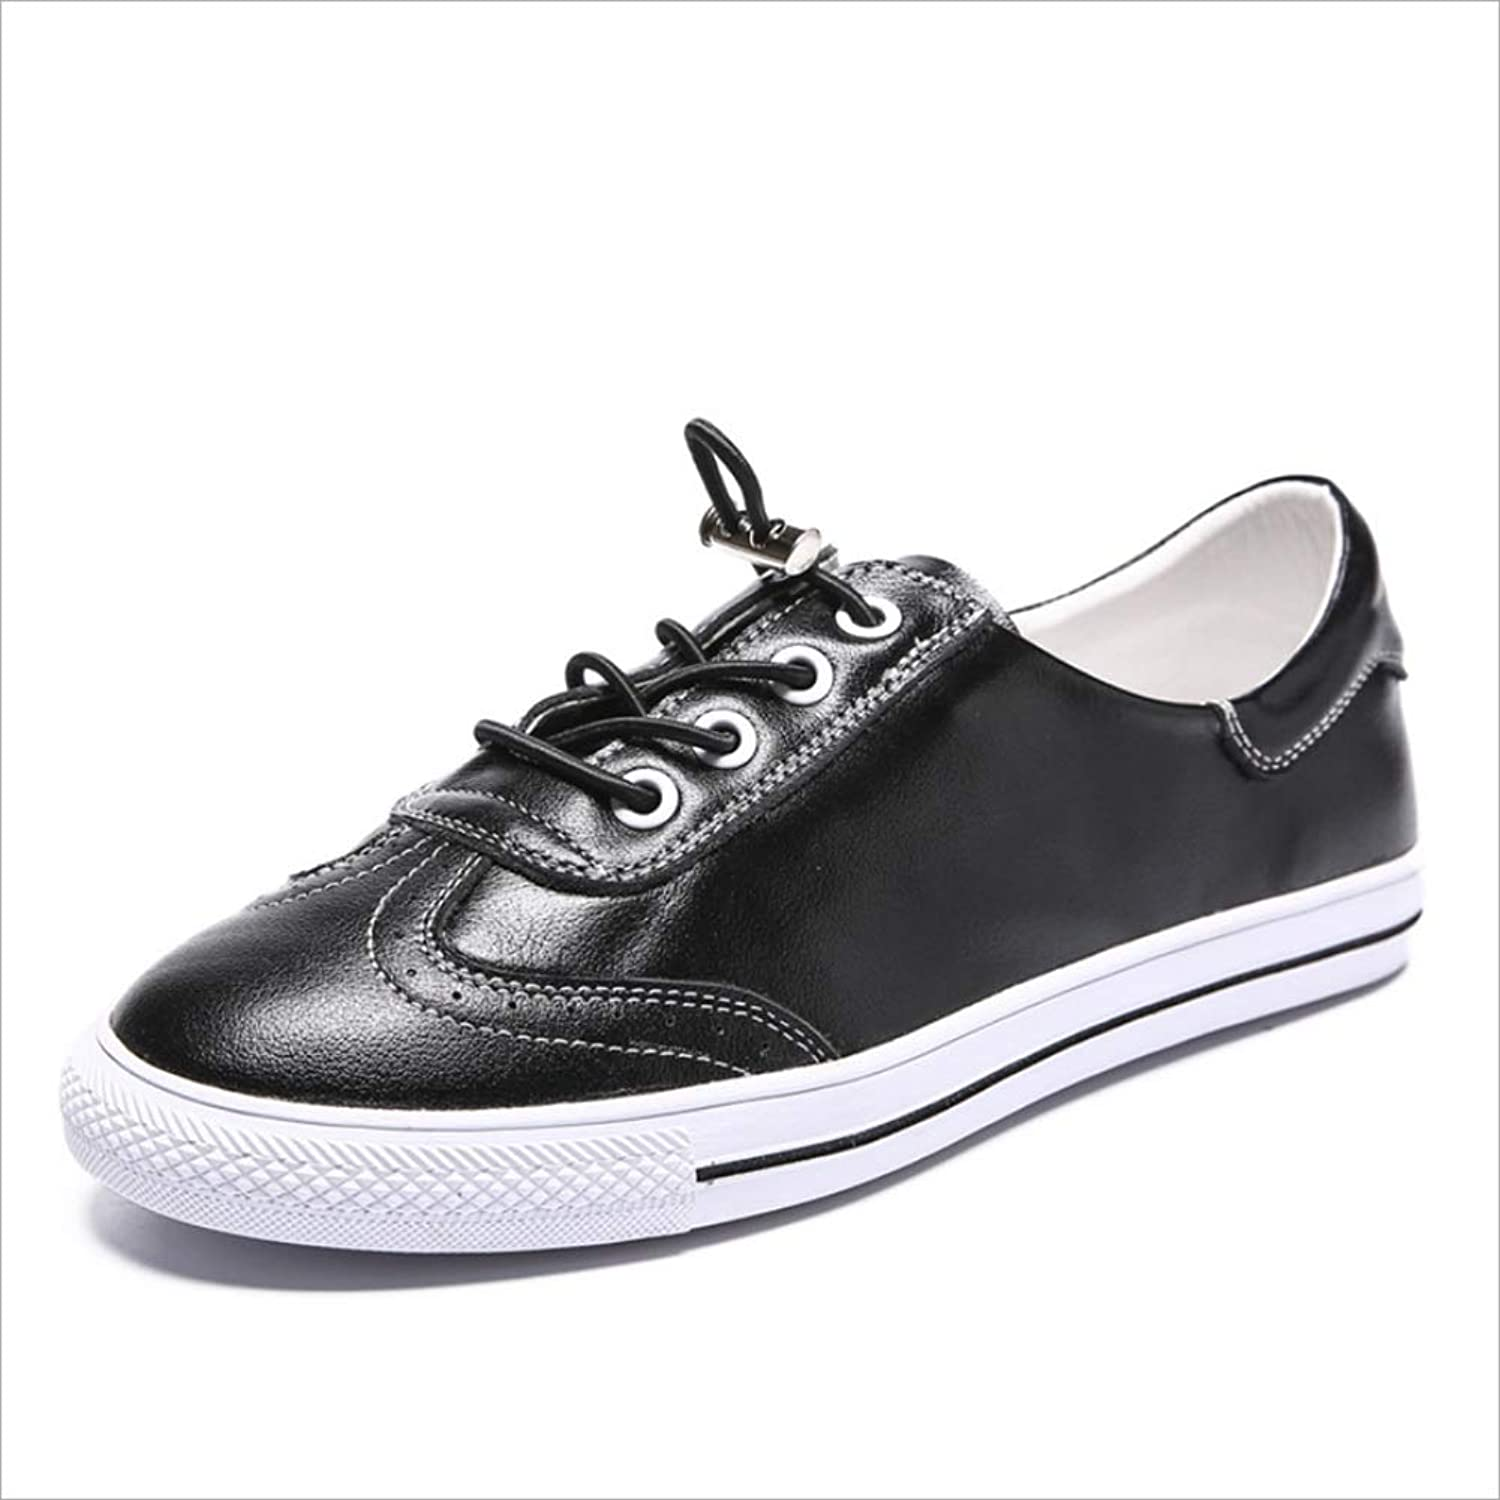 Women's Sneakers,Simple Light Breathable Casual shoes,Comfort Damping Athletic Sneakers,Spring Summer Fall Camping Park (color   A, Size   40)